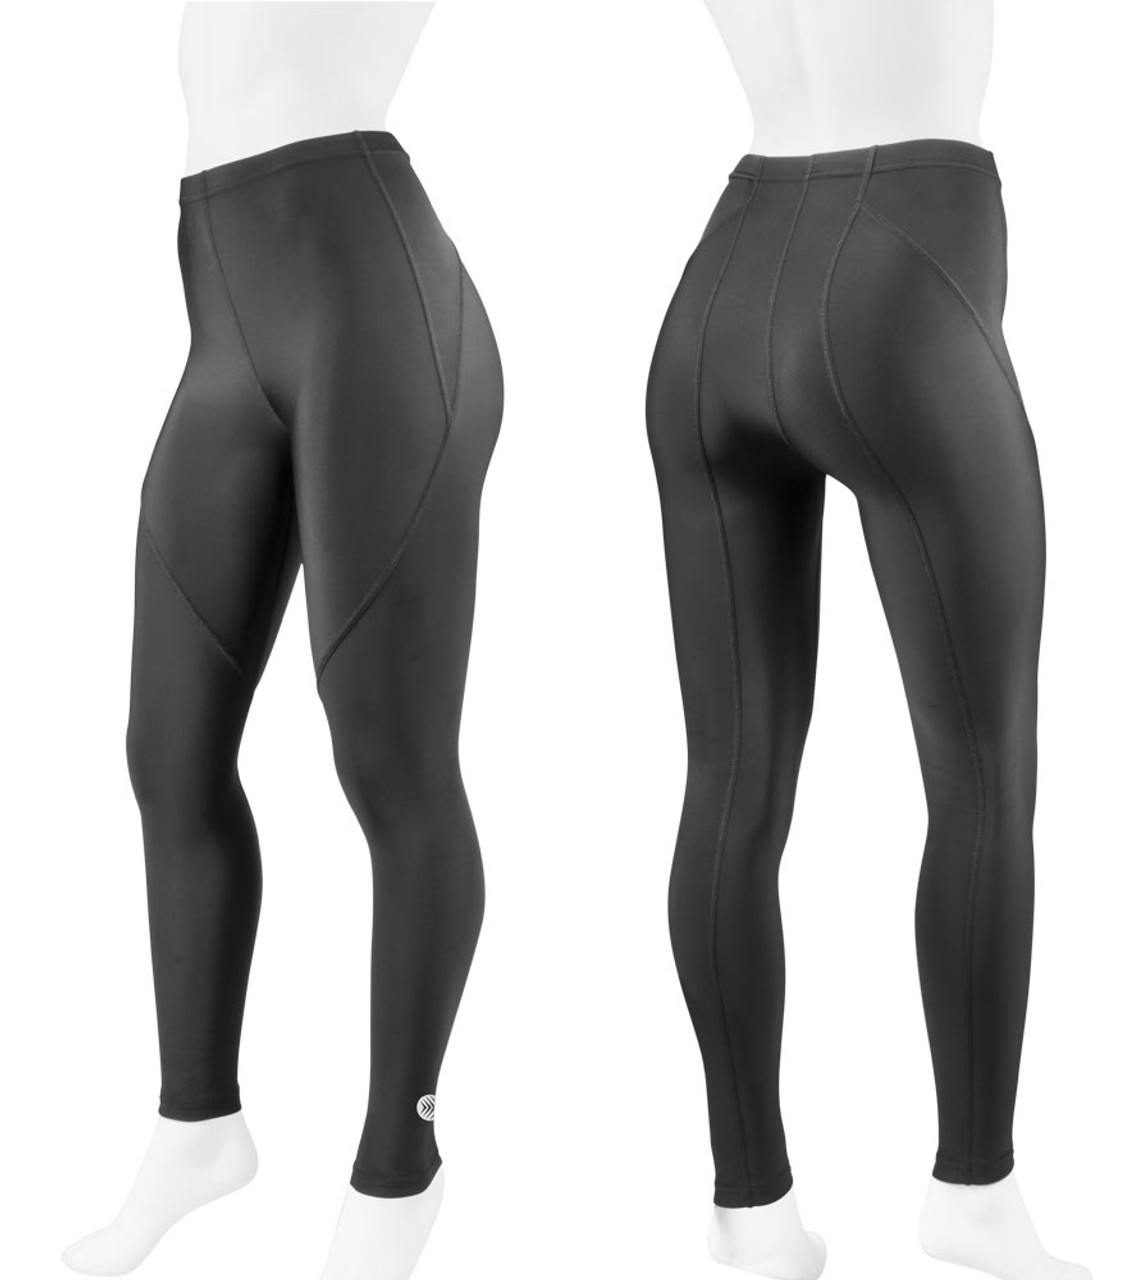 69b64df137b73 Women's Triumph Black Compression Workout Tights by Aero Tech Designs